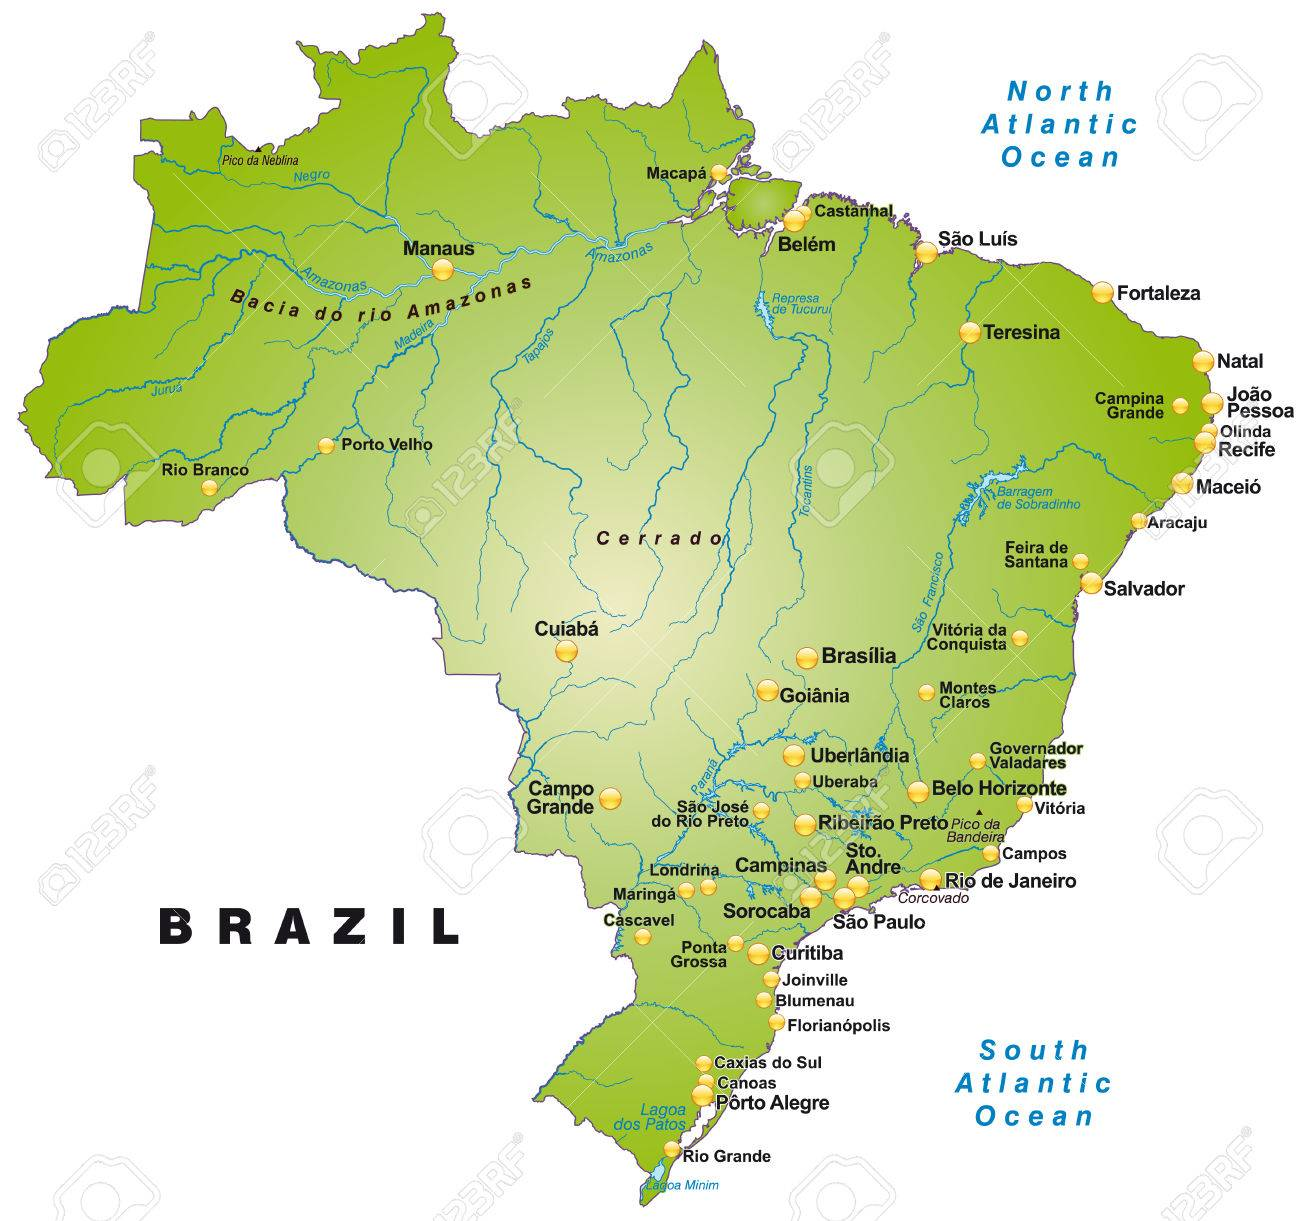 Map Of Brazil As An Overview Map In Green Royalty Free Cliparts - Aracaju map